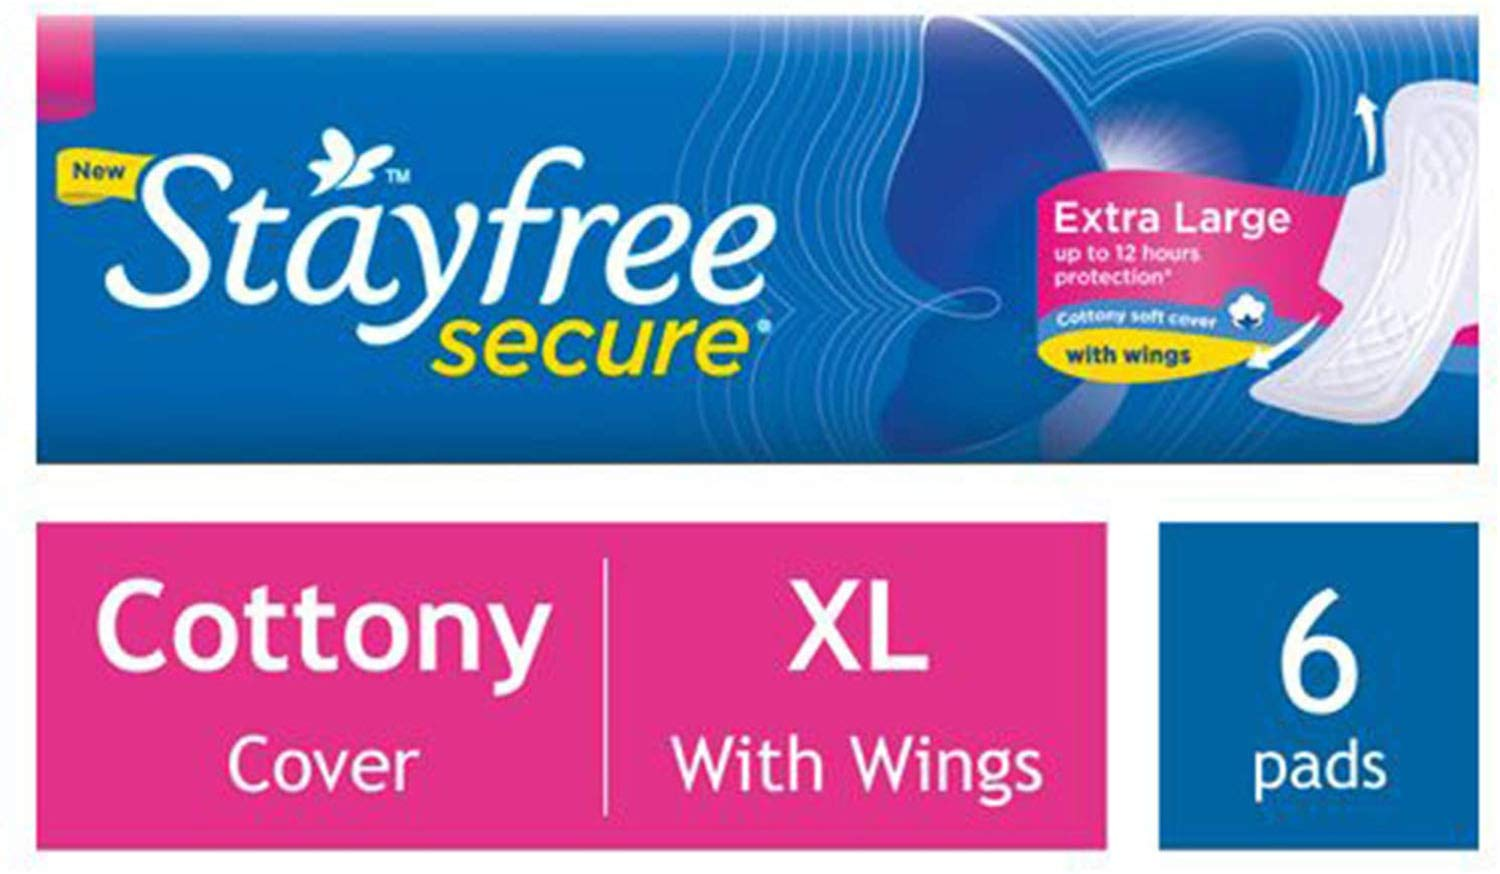 STAYFREE SECURE COTTONY EXTRA LARGE 36/-